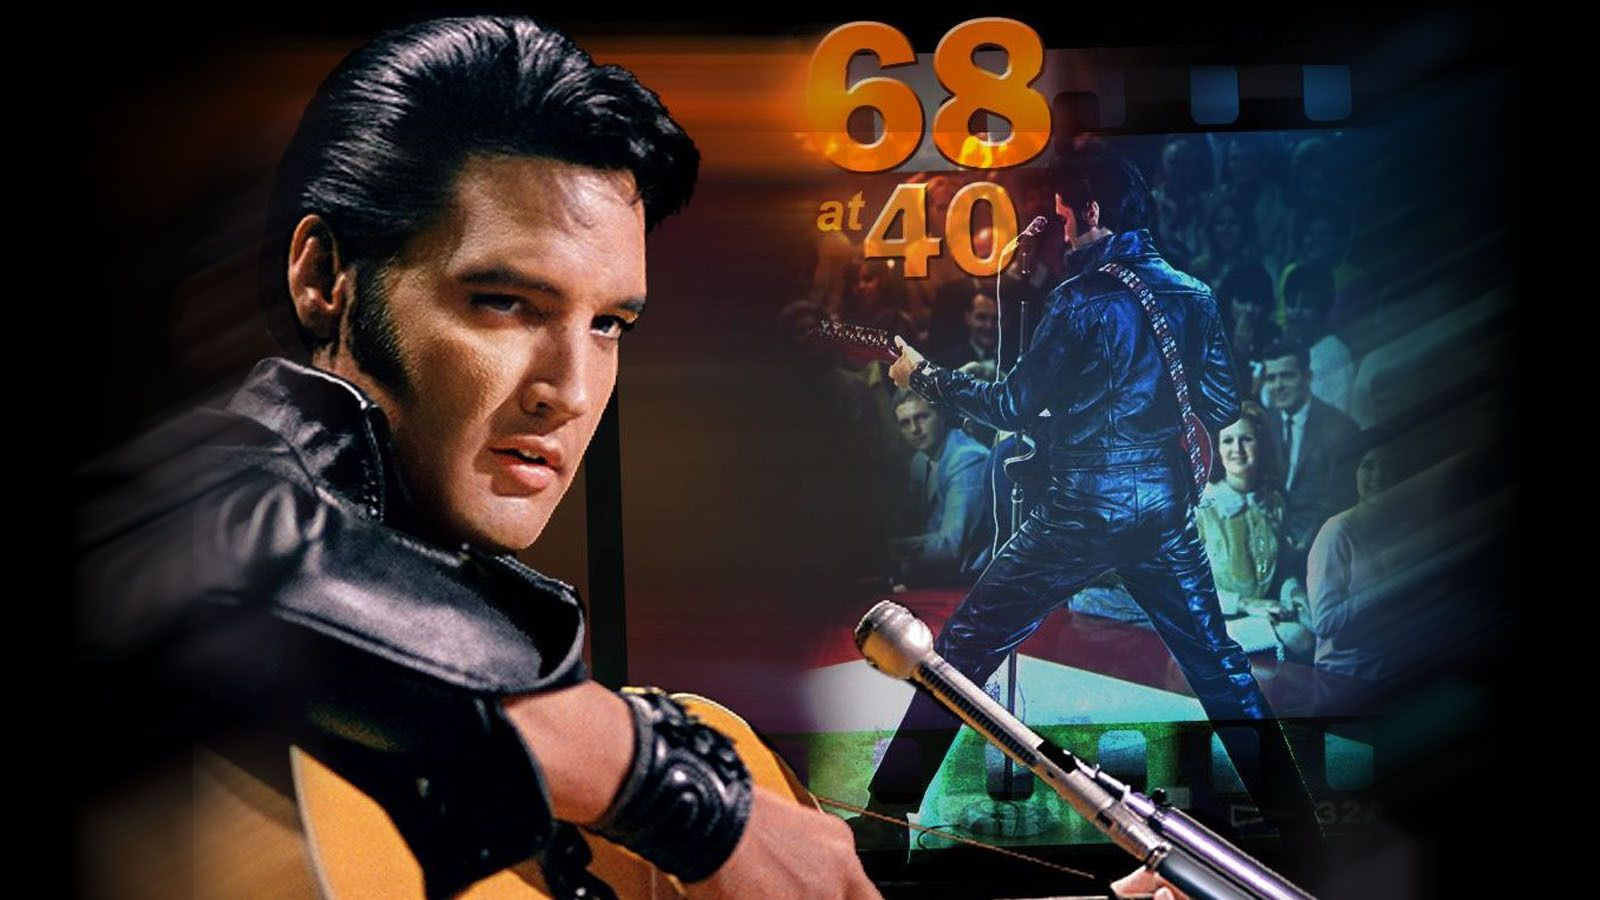 Elvis Wallpaper Free Att Go Phone Refil